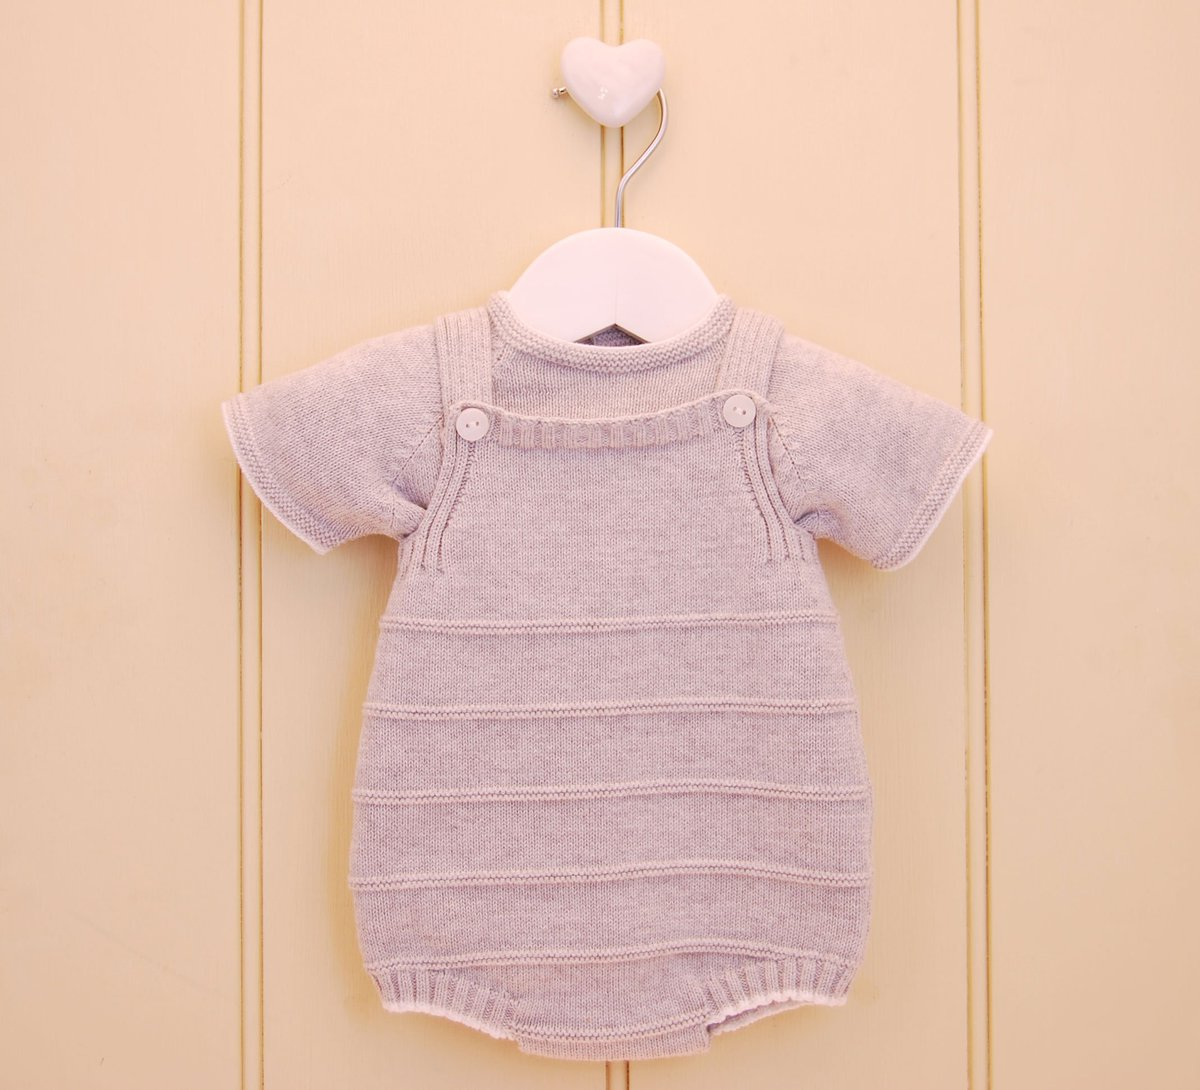 Pex Wholesale On Twitter Fabulous New Spanish Suits For Baby Boys Beautiful Soft Pure Cotton And Uber Spanish Style Spanishbaby Spring2019 Wholesale Babywholesale Babywear Https T Co Ng9iodyu1q Https T Co Vyqpulm94y,Benefits Of Houseplants